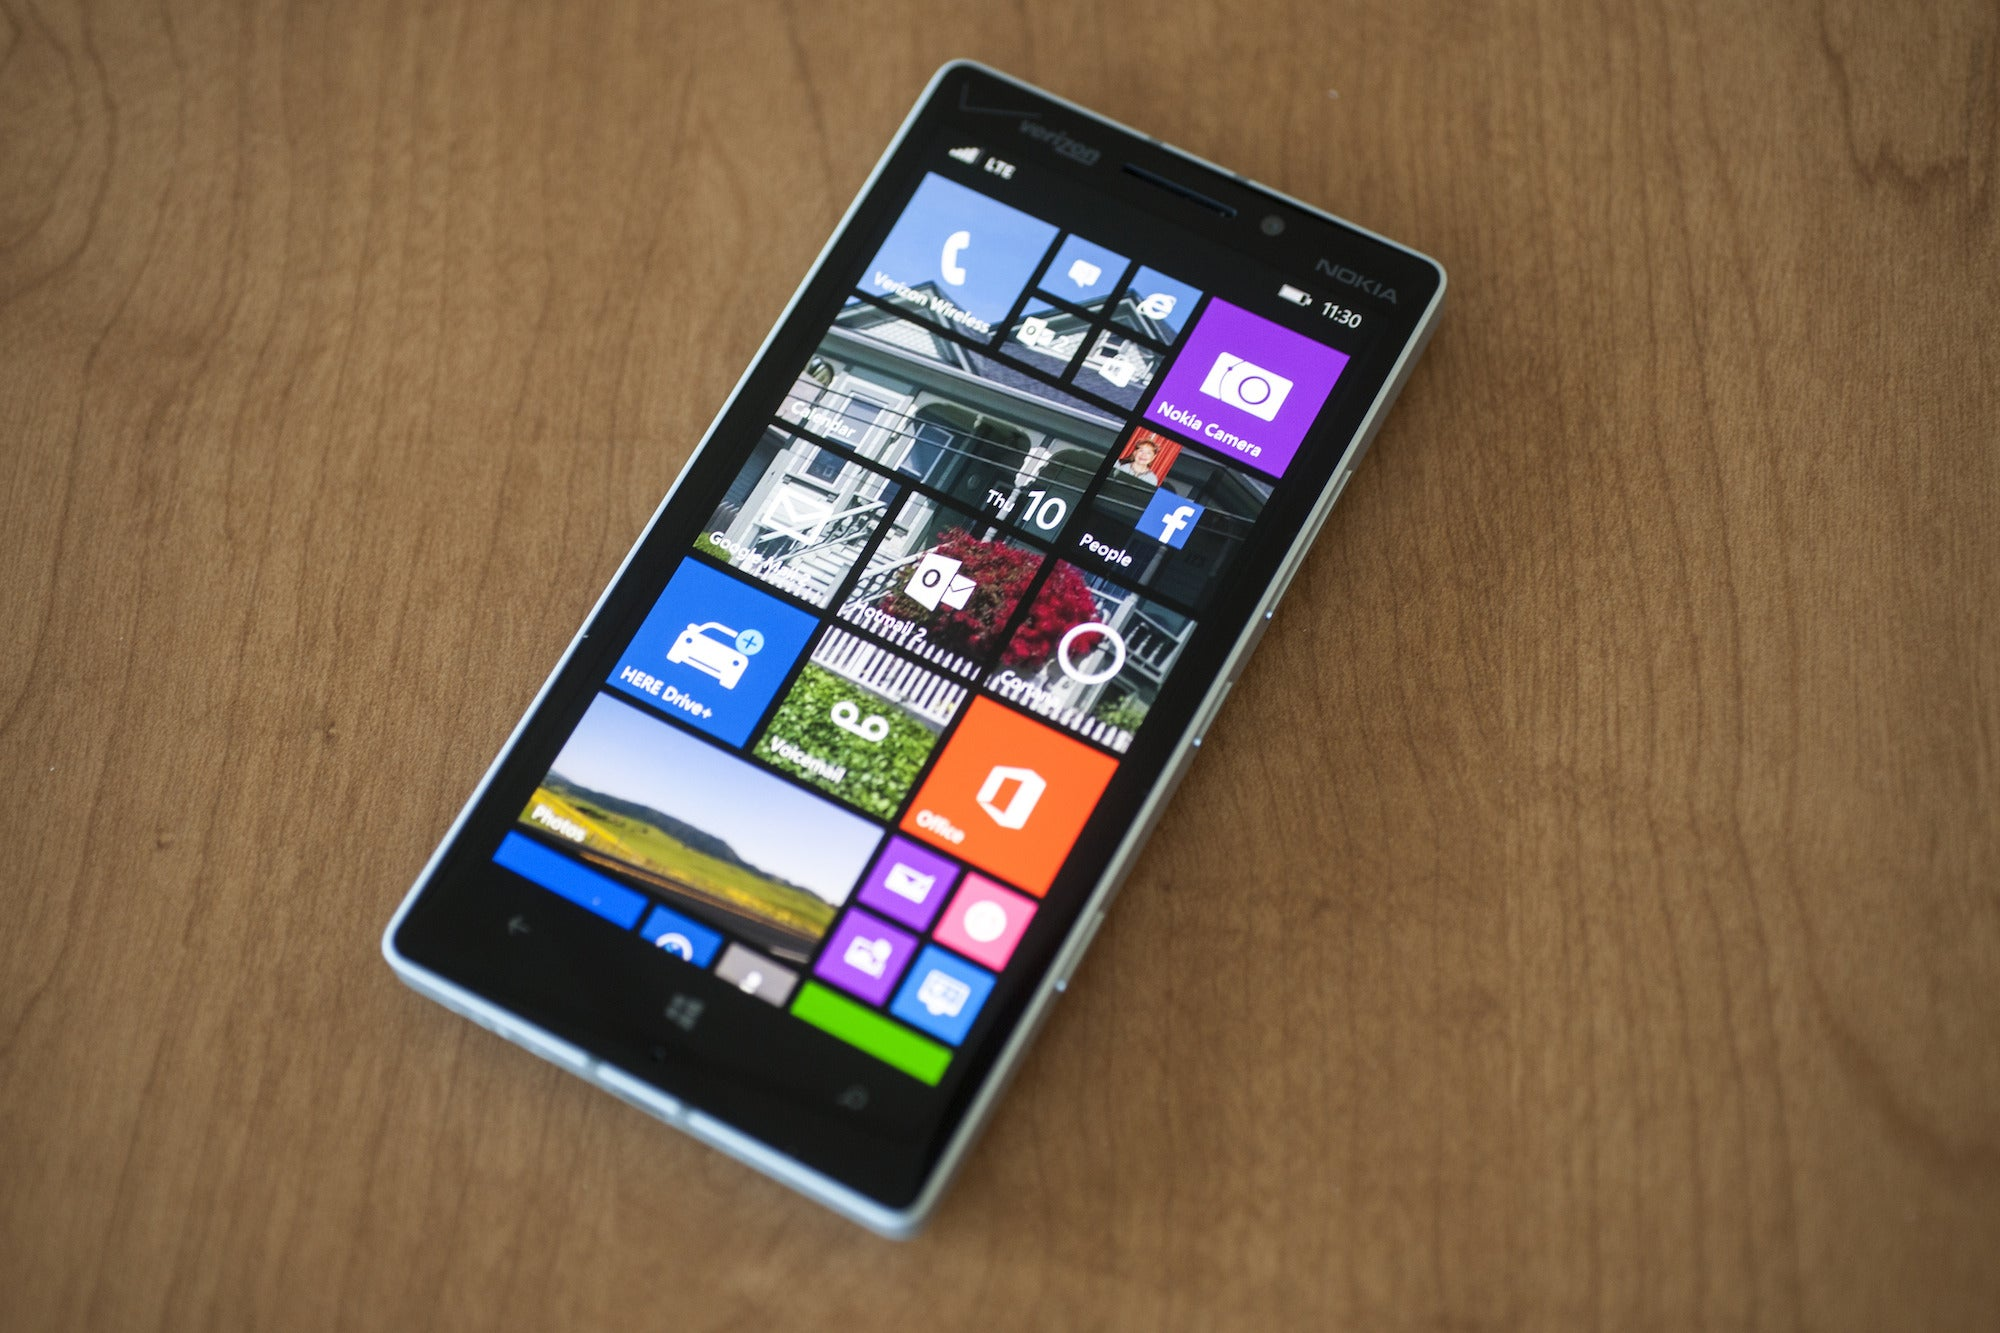 Windows Phone Chief Promises File Manager, Improved